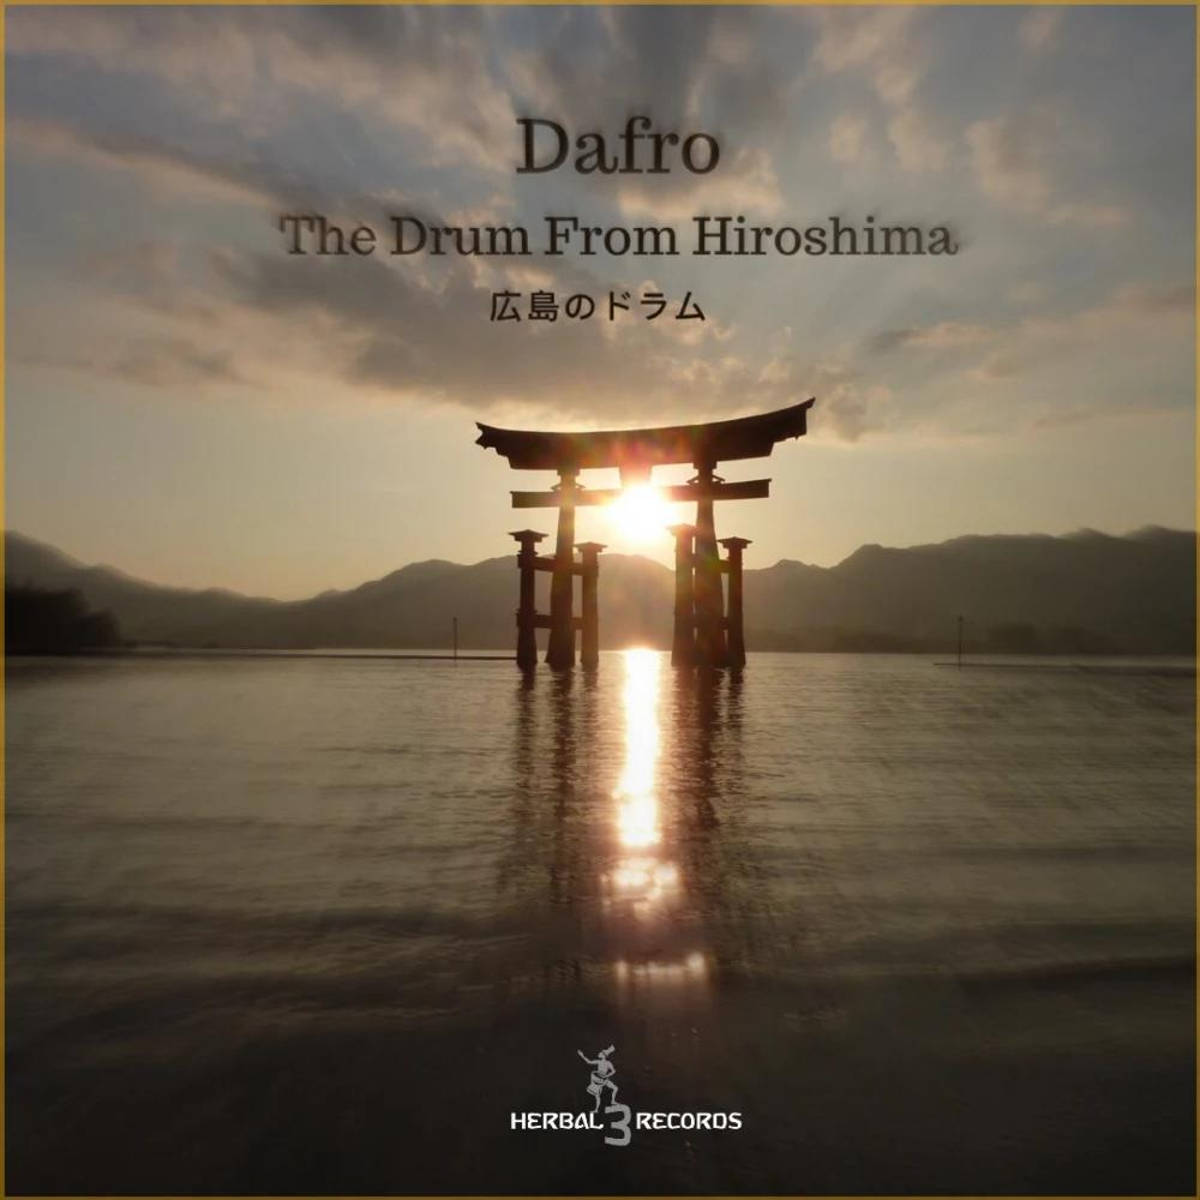 Dafro - The Drum from Hiroshima (Original Mix)